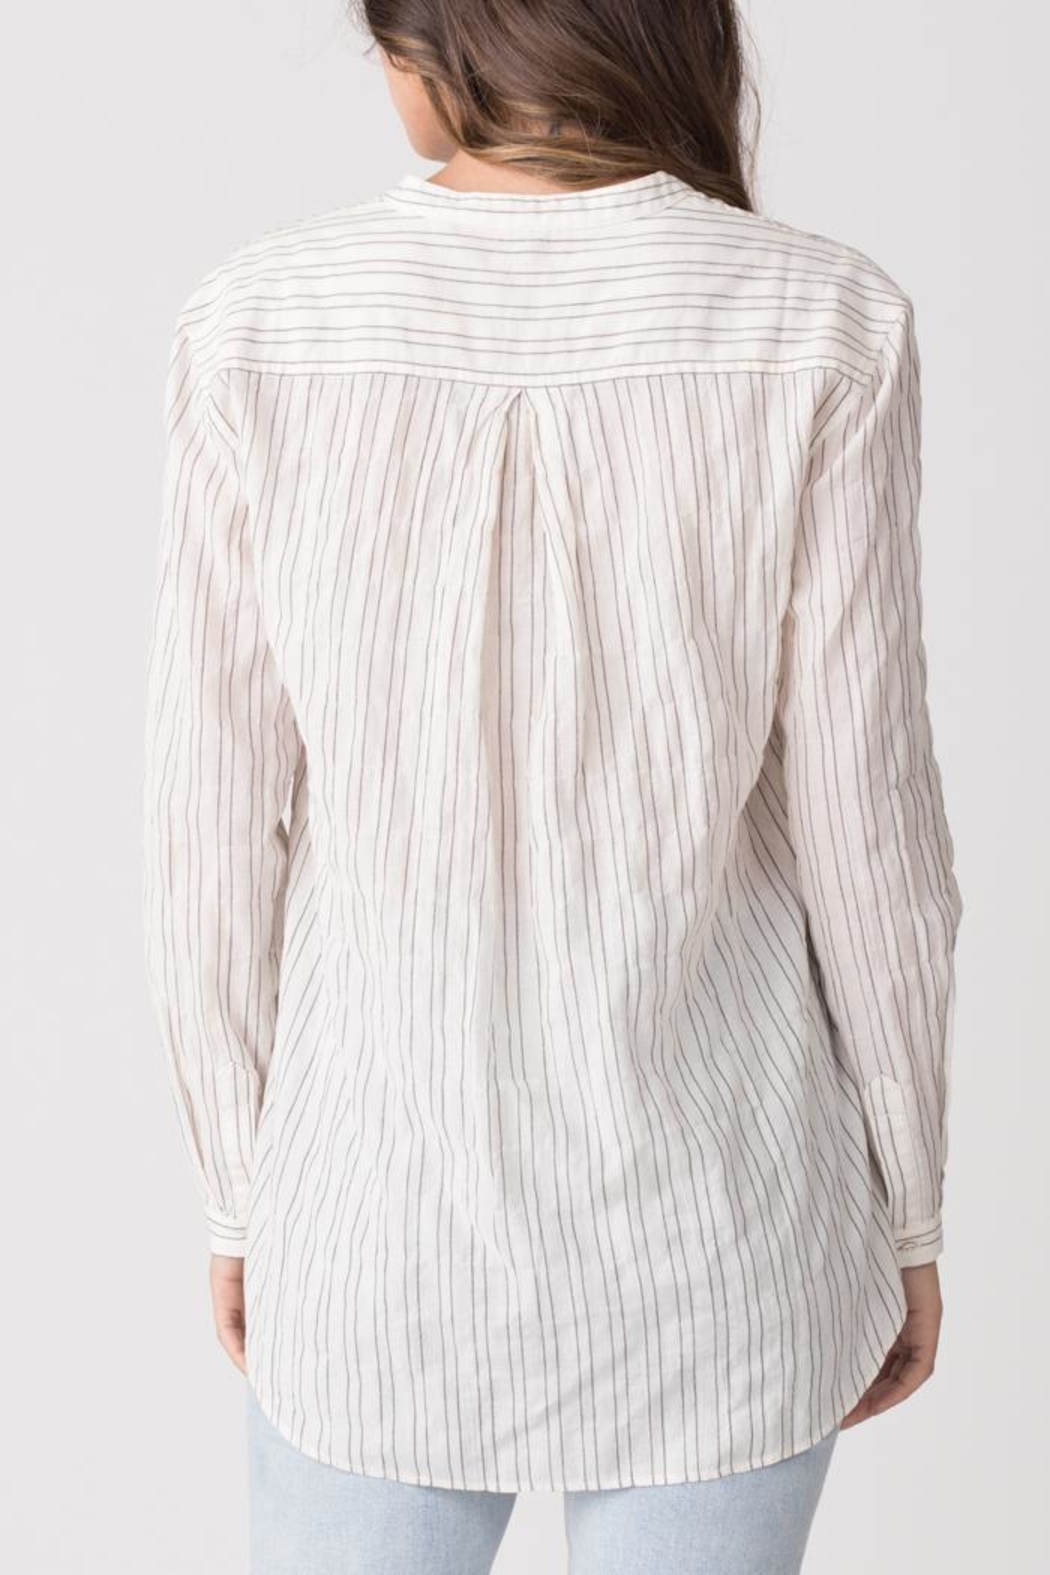 Margaret O'Leary Relaxed Striped Shirt - Side Cropped Image